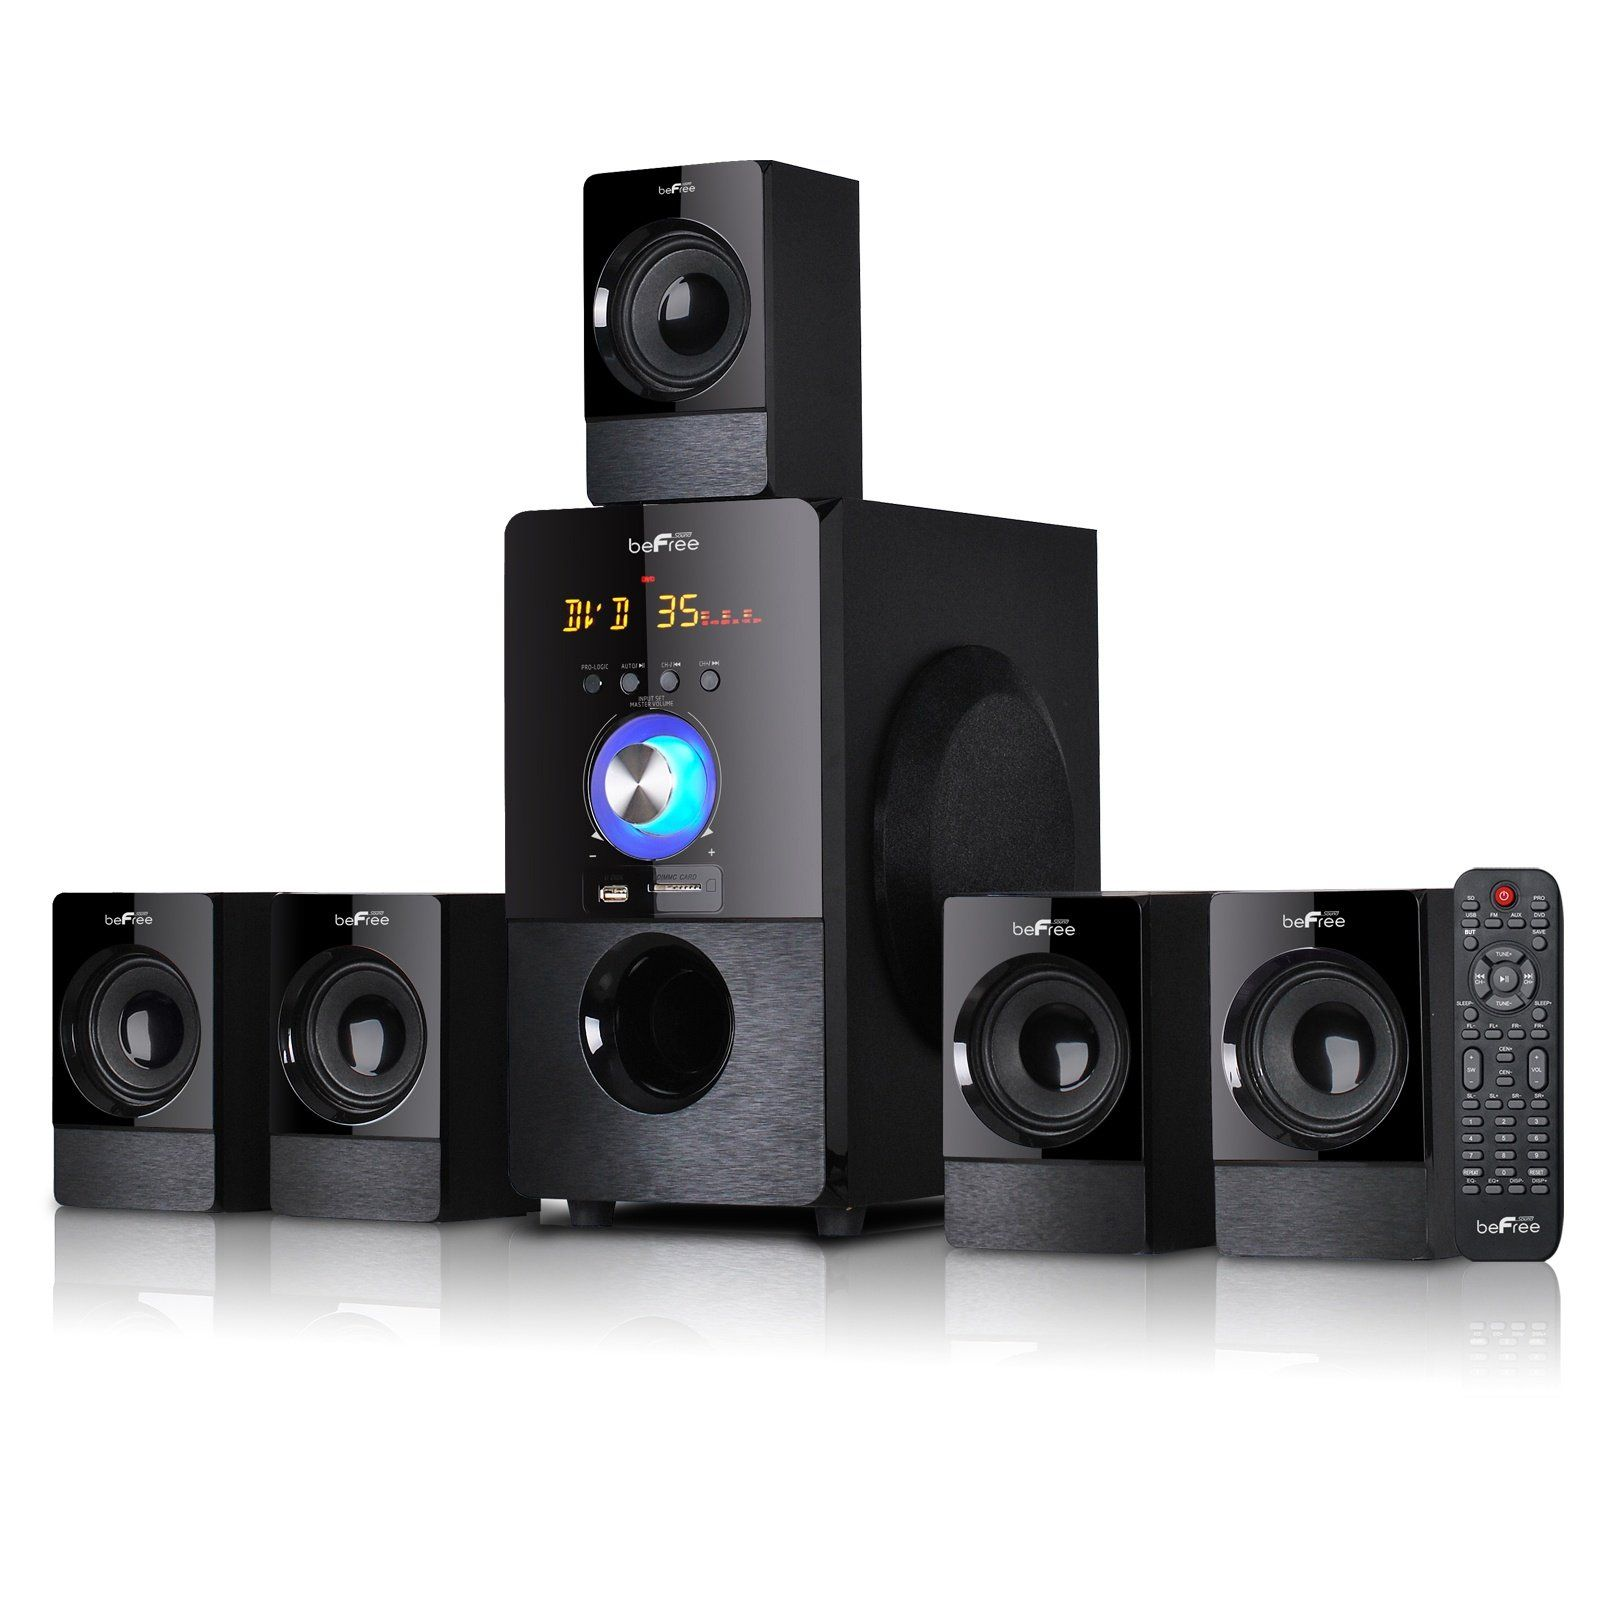 Befree sound channel surround sound bluetooth speaker system in